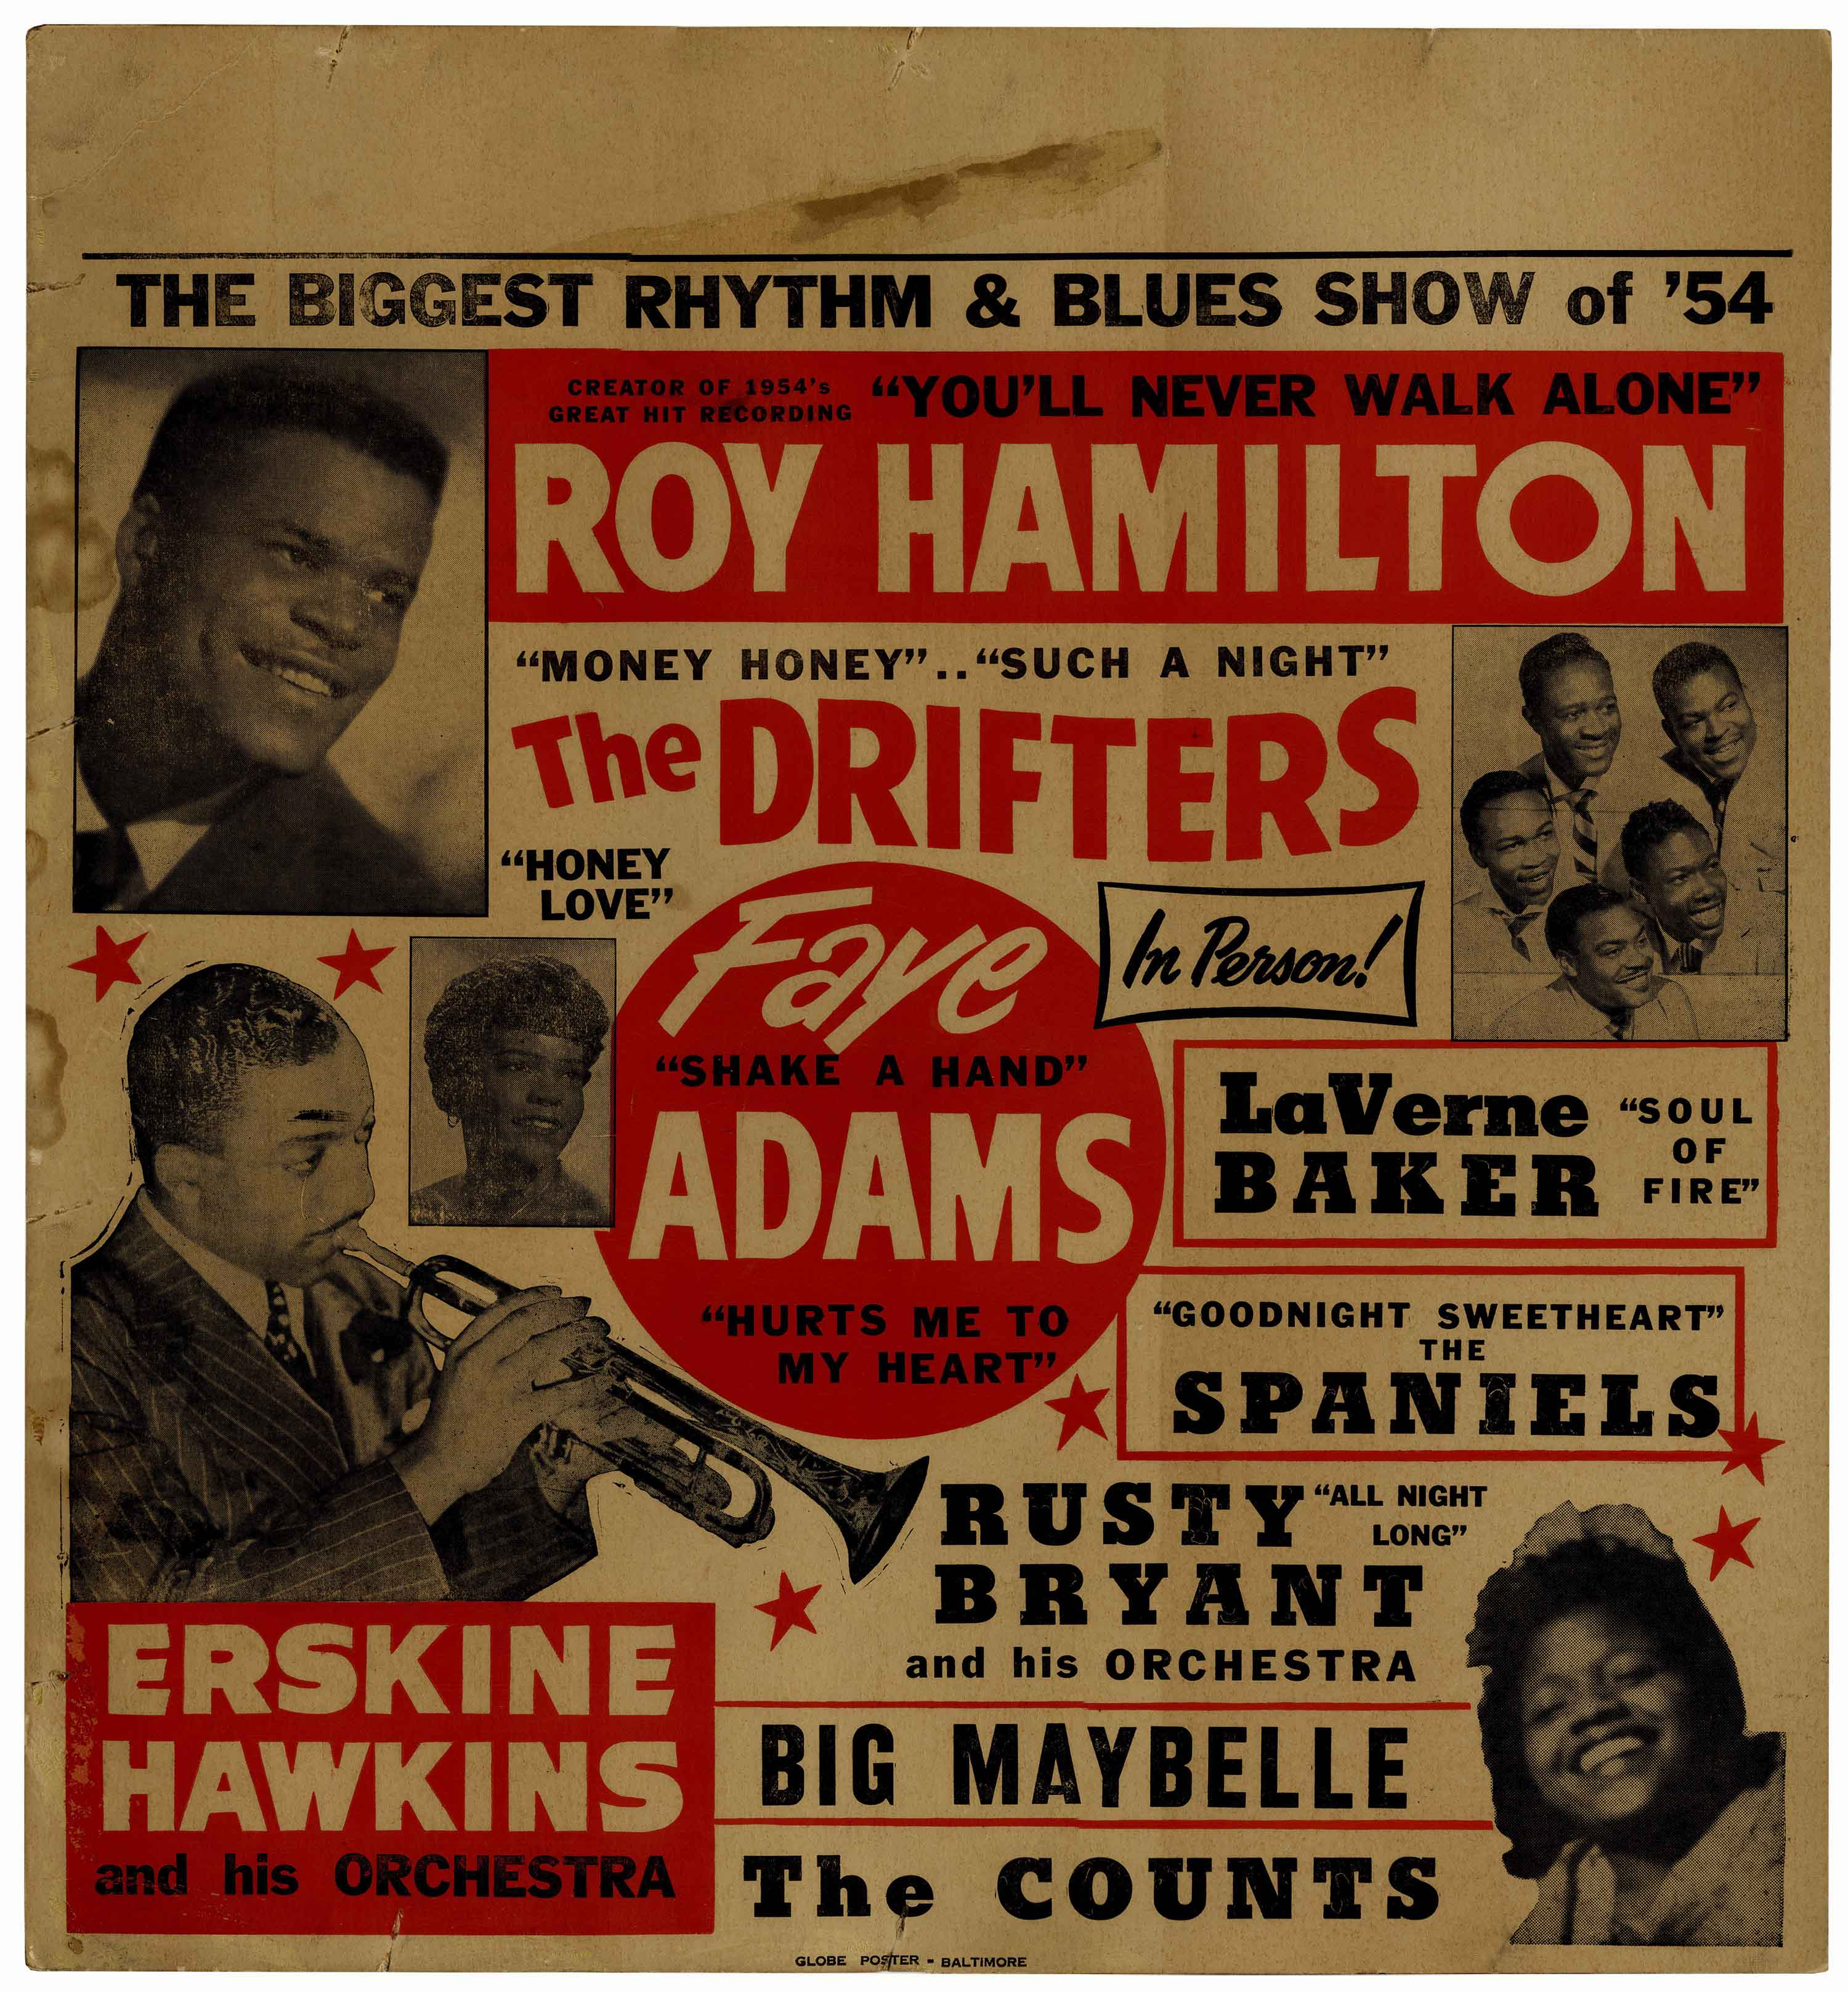 item detail roy hamilton and the drifters concert poster from 1954